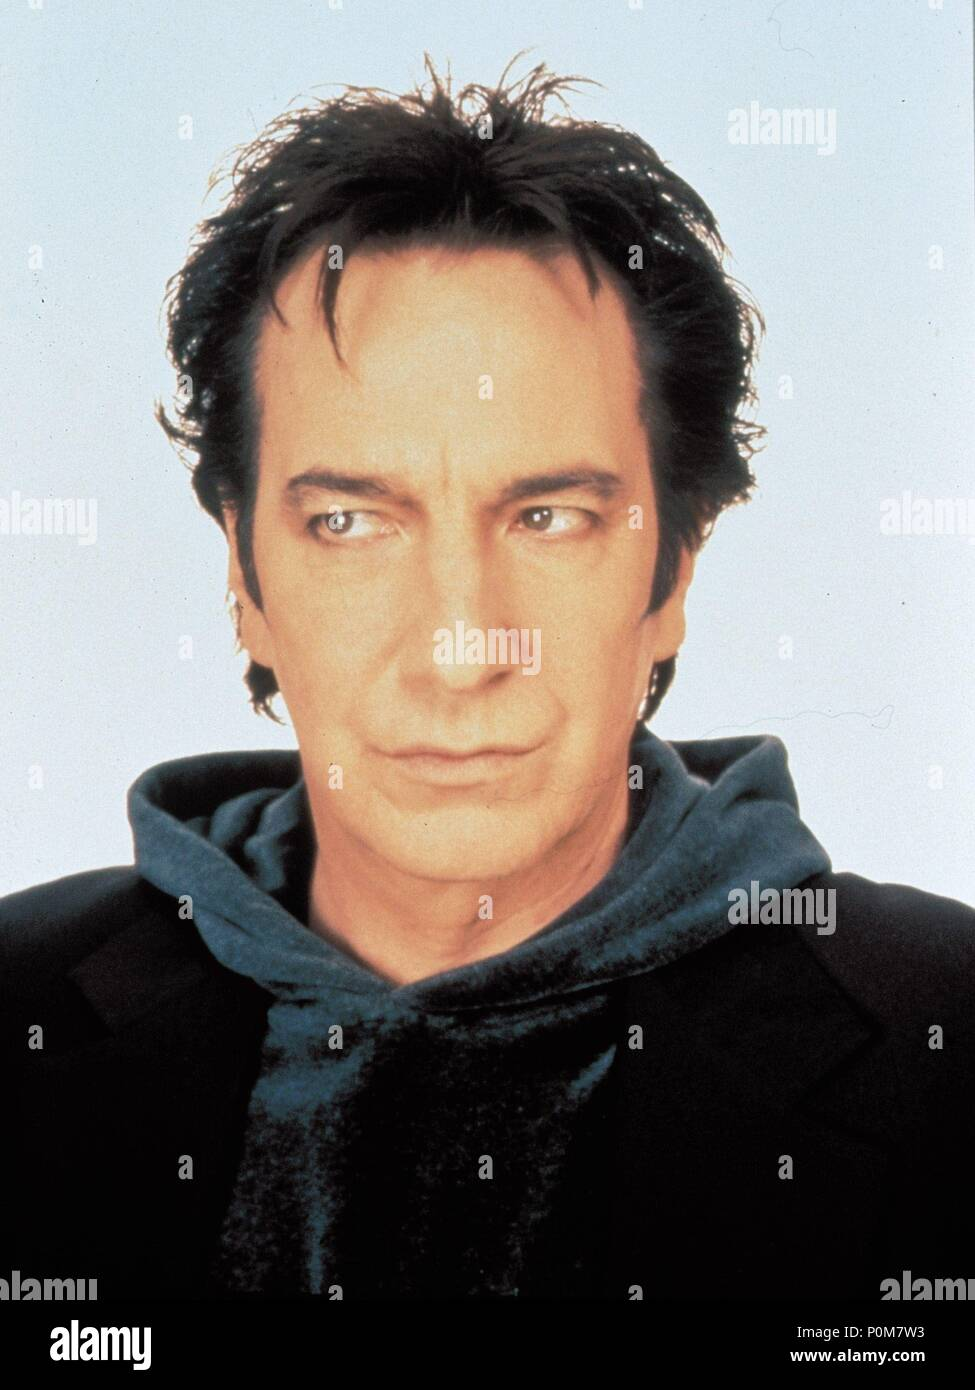 Original Film Title: DOGMA.  English Title: DOGMA.  Film Director: KEVIN SMITH.  Year: 1999.  Stars: ALAN RICKMAN. Copyright: Editorial inside use only. This is a publicly distributed handout. Access rights only, no license of copyright provided. Mandatory authorization to Visual Icon (www.visual-icon.com) is required for the reproduction of this image. Credit: VIEW ASKEW / Album - Stock Image